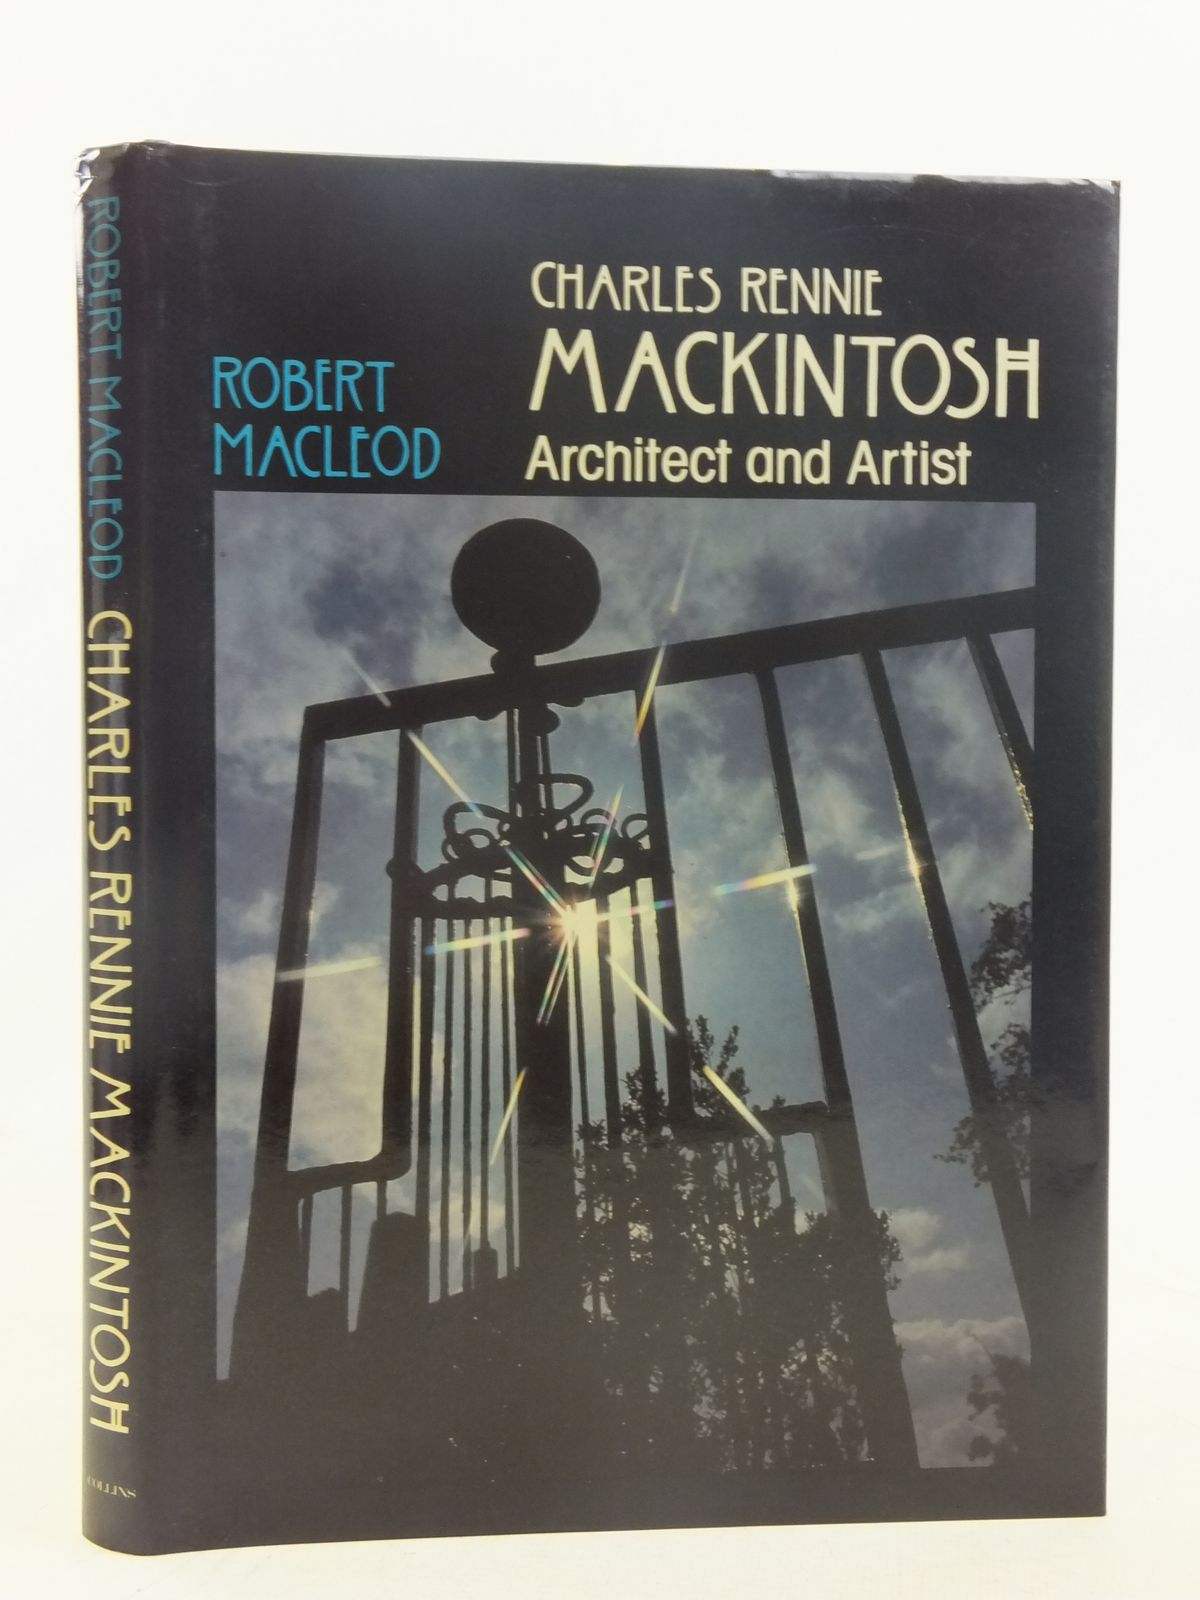 Photo of CHARLES RENNIE MACKINTOSH ARCHITECT AND ARTIST written by MacLeod, Robert illustrated by Mackintosh, Charles Rennie published by Collins (STOCK CODE: 1606824)  for sale by Stella & Rose's Books